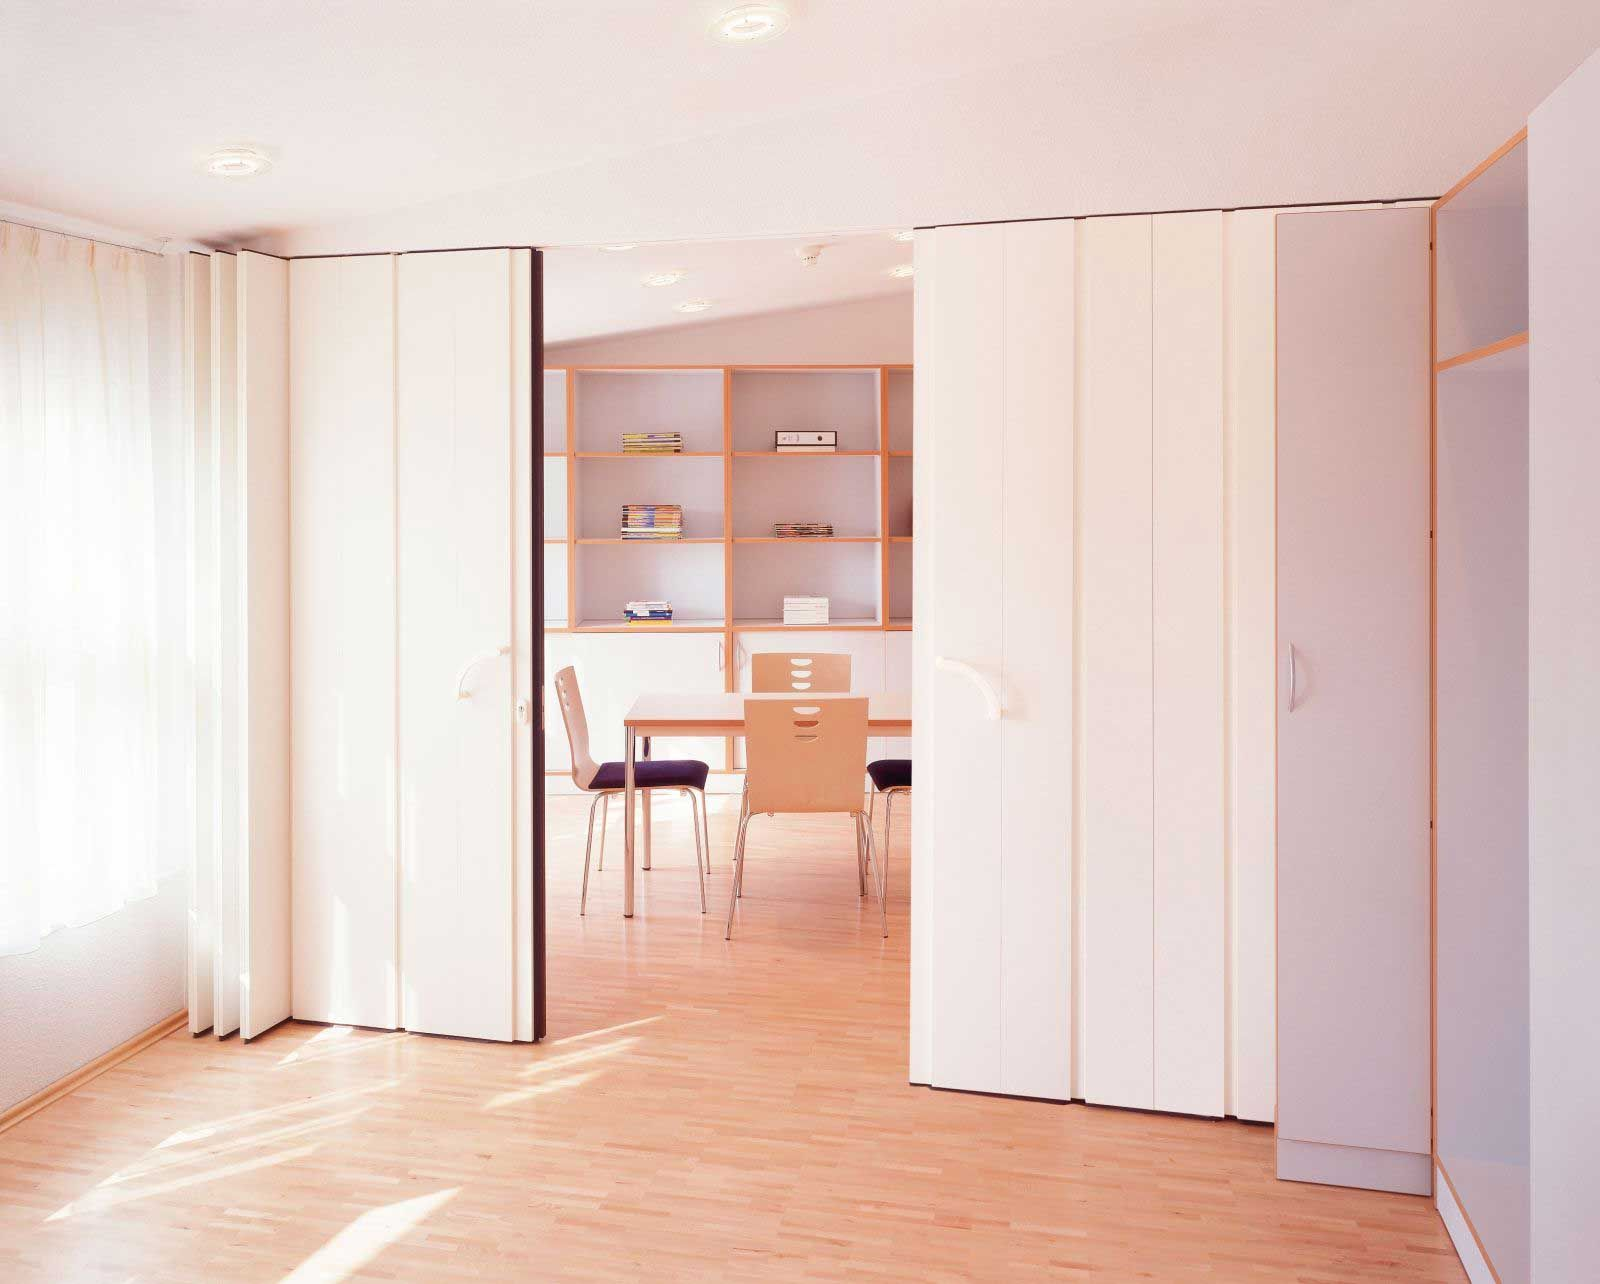 Awesome Room Divider Ideas That Can Work In Nearly Any Space